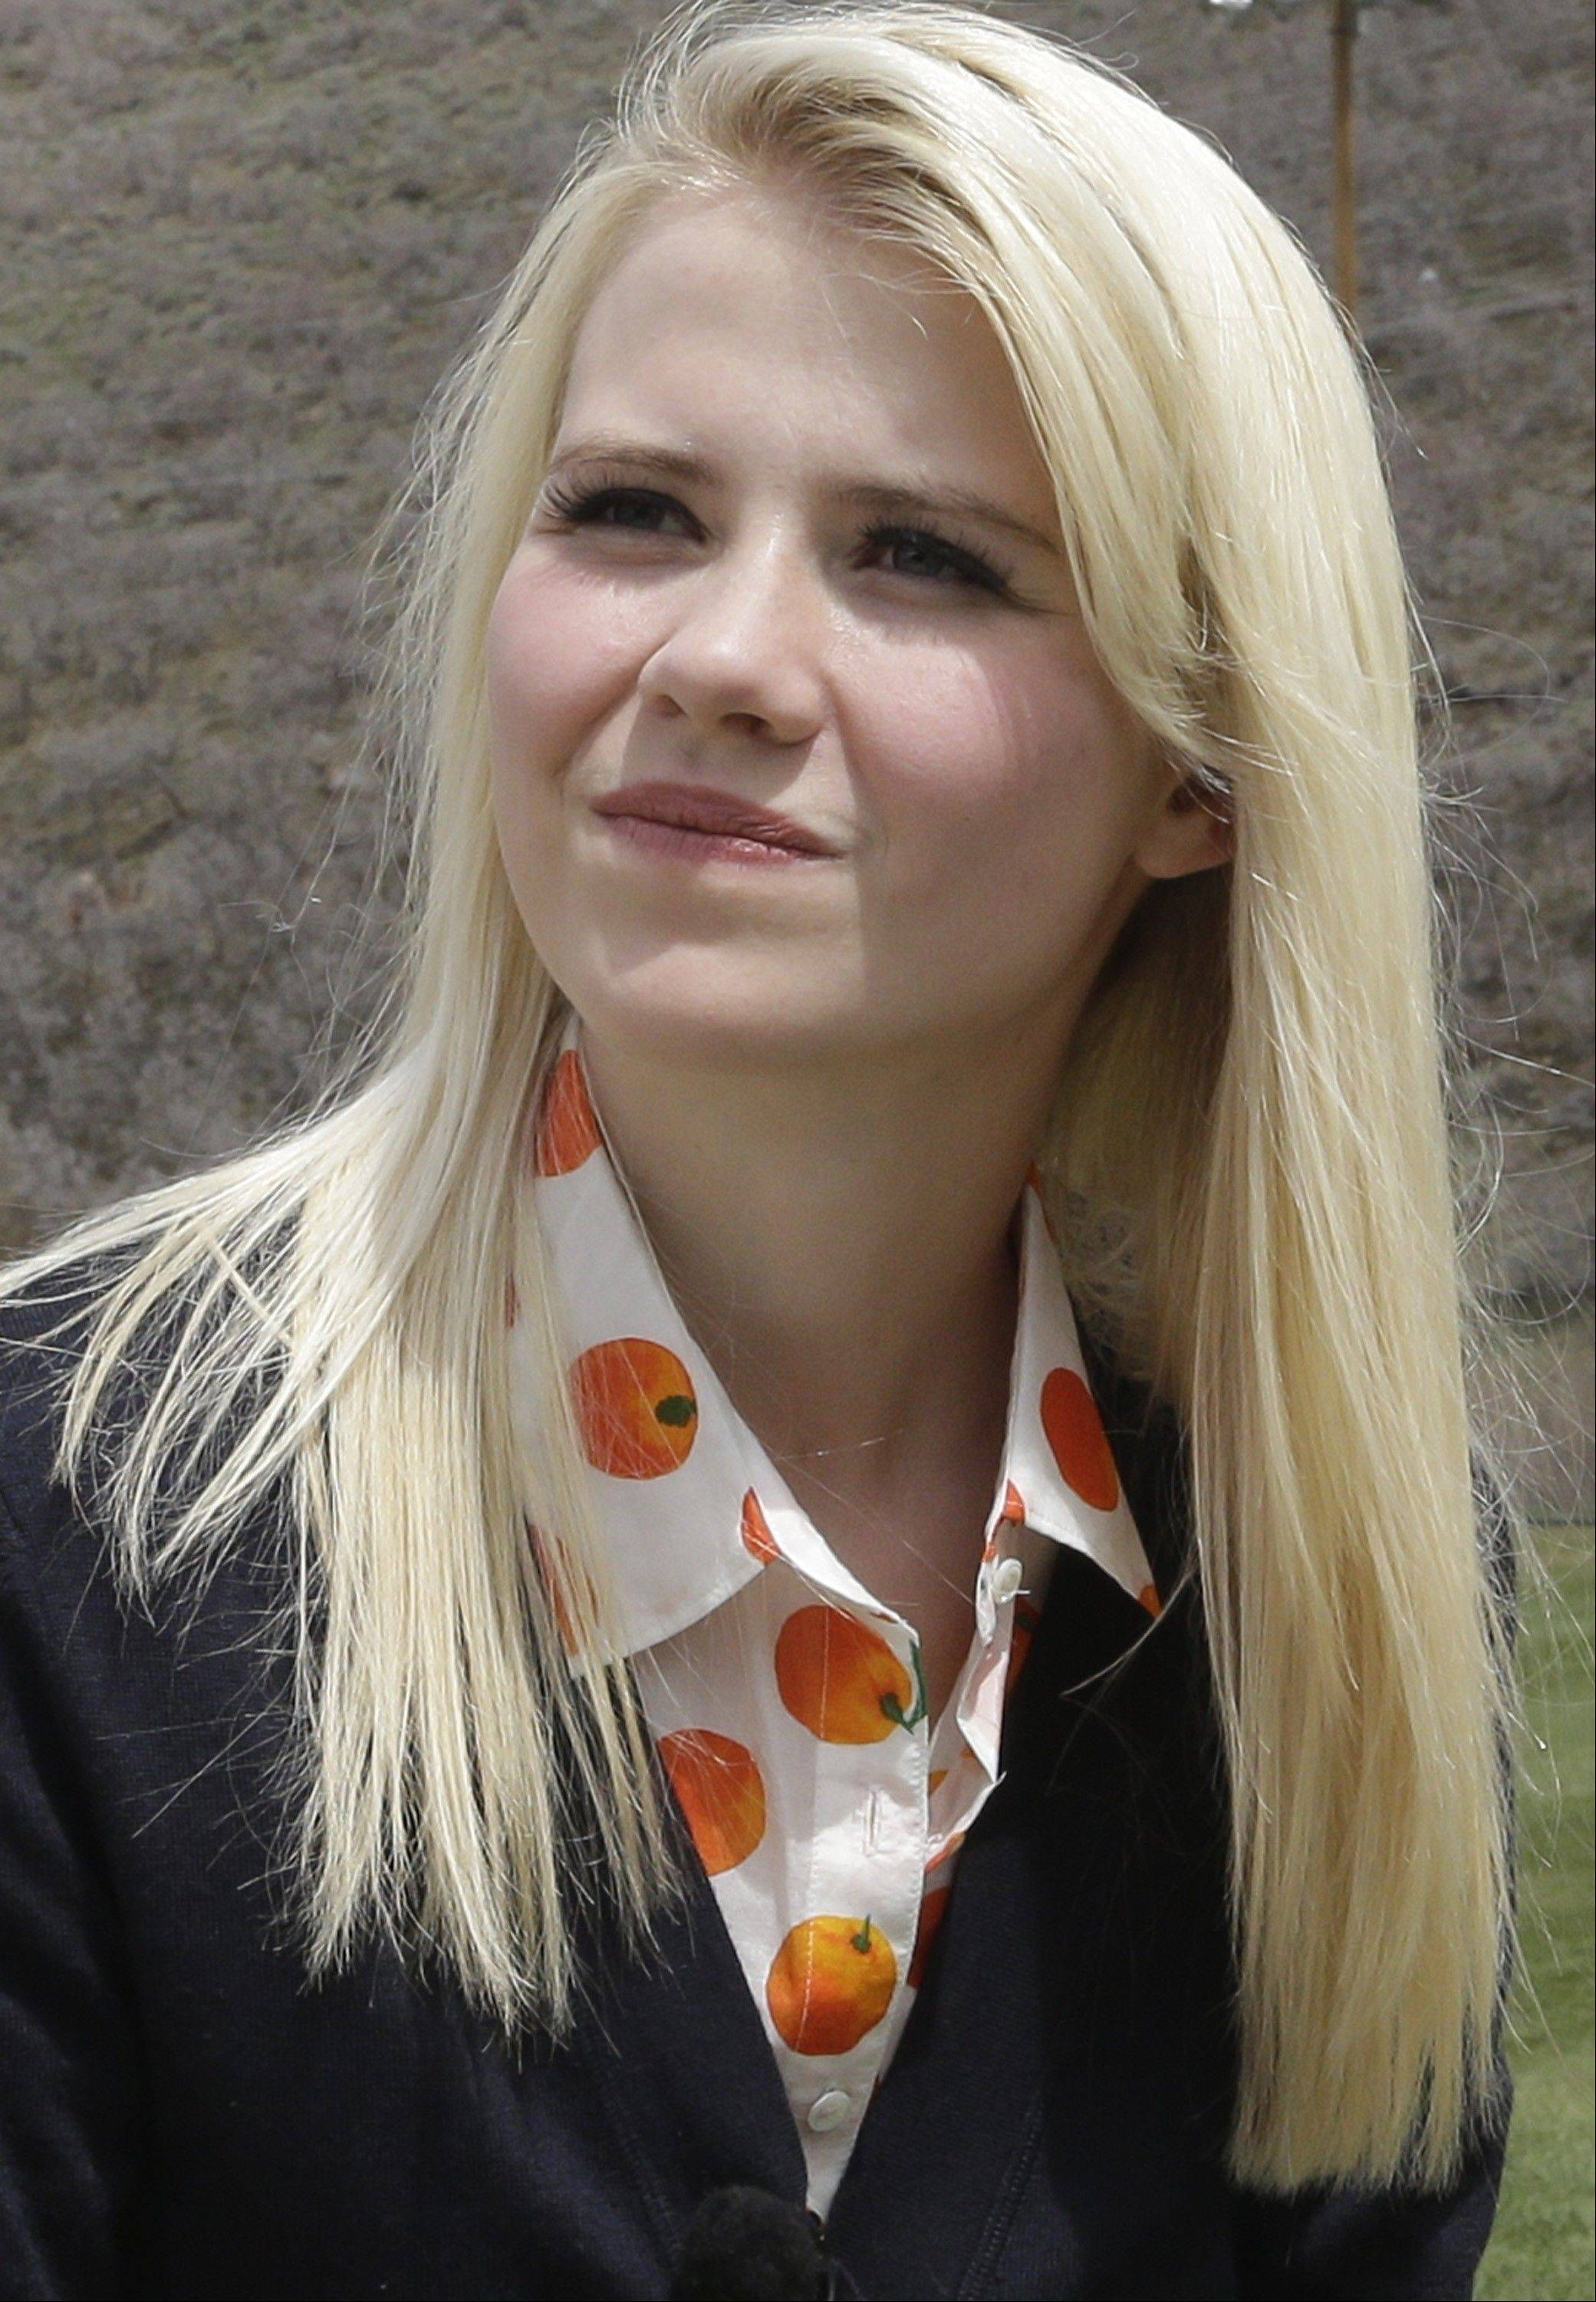 More than a decade after her kidnapping and rescue grabbed national headlines, Elizabeth Smart is publishing a memoir of her ordeal called �My Story,� which is being released Monday, Oct. 7.